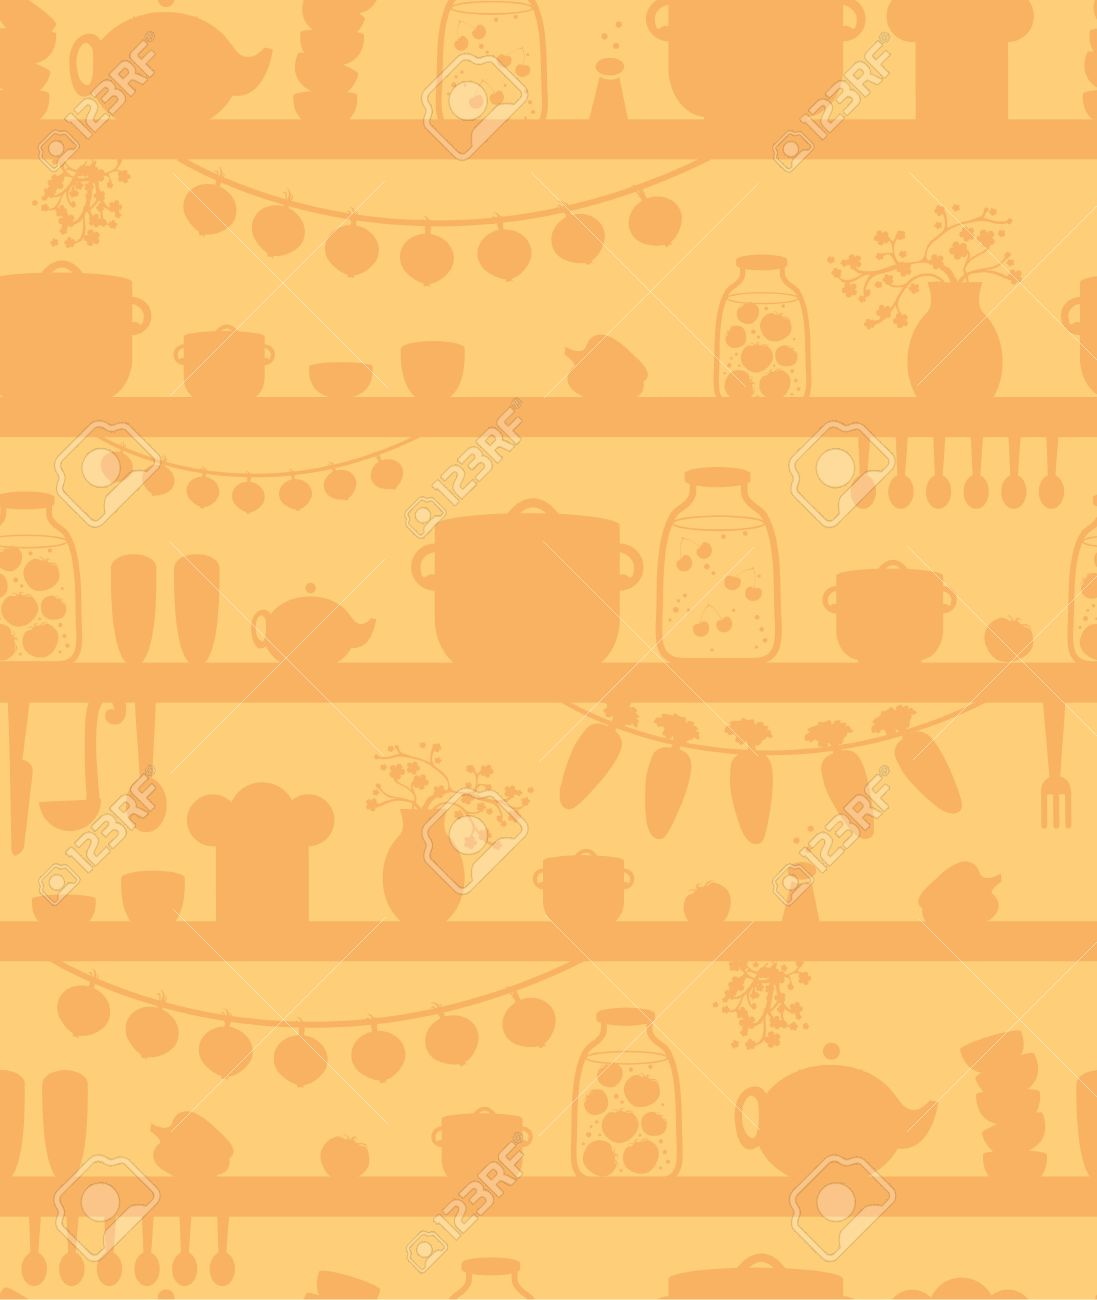 Kitchen pantry shelves seamless pattern background Stock Vector - 17195341